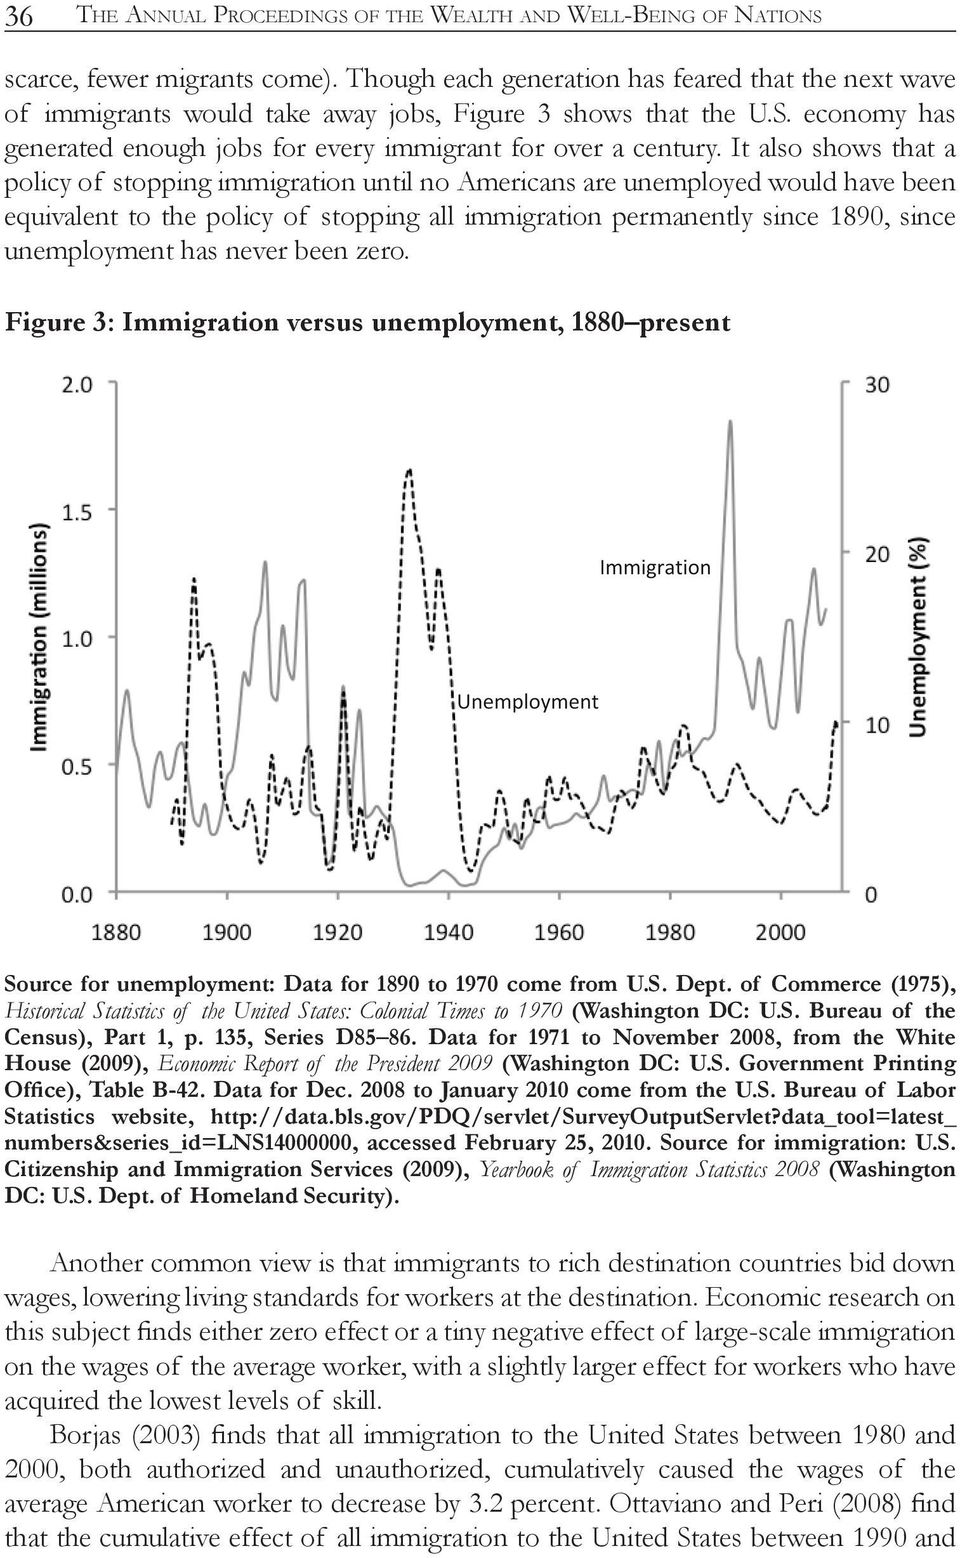 It also shows that a policy of stopping immigration until no Americans are unemployed would have been equivalent to the policy of stopping all immigration permanently since 1890, since unemployment